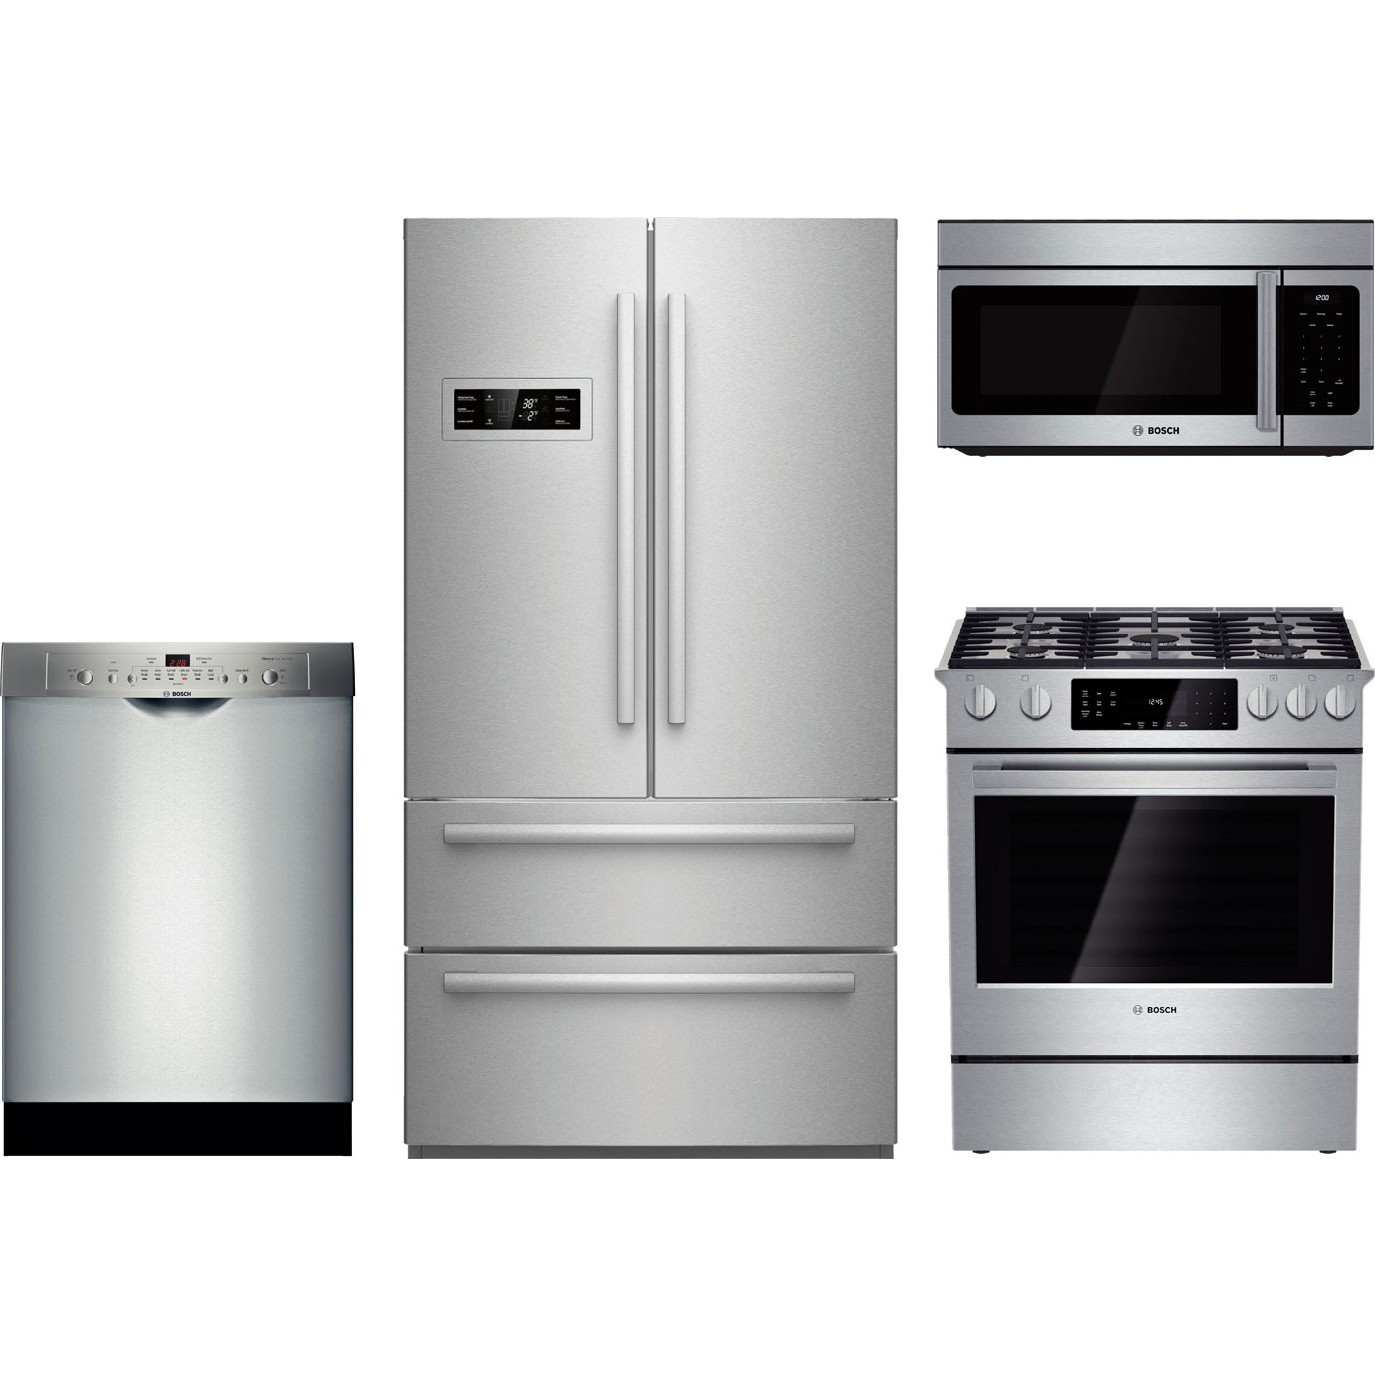 ge kitchen appliances package deals with Bosch Boschkit1 on Ge Cafe Cgs990setss likewise Whirlpool Wrf757sdem together with Electrolux Icon E23bc78ips also Ge Jgs750eefes in addition Lg Lcrt2010bd.